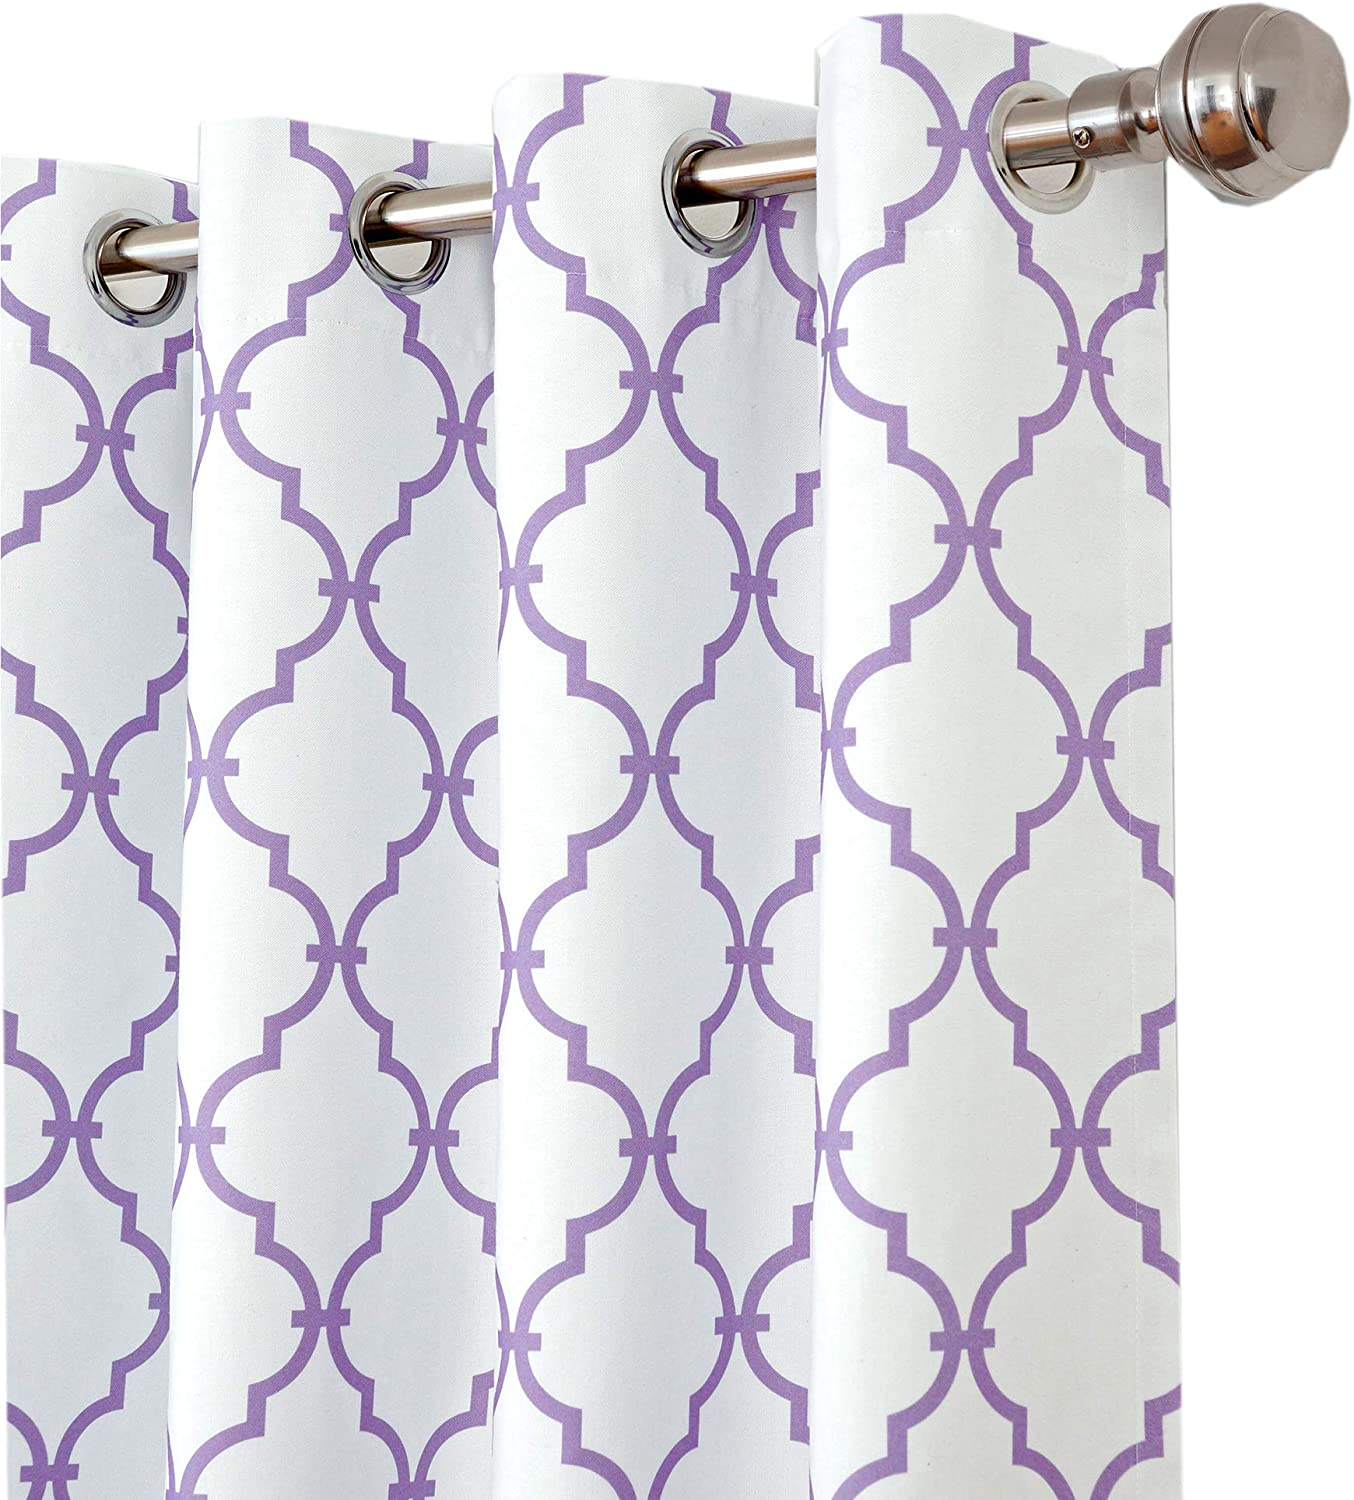 Candice Kids Pastel Lattice Print Blackout Room Darkening and Thermal Insulating Window Curtain   Juvenile Single Lined Grommet Top Panel by Elrene, 52 Inch Wide X 95 Inch Long, Purple